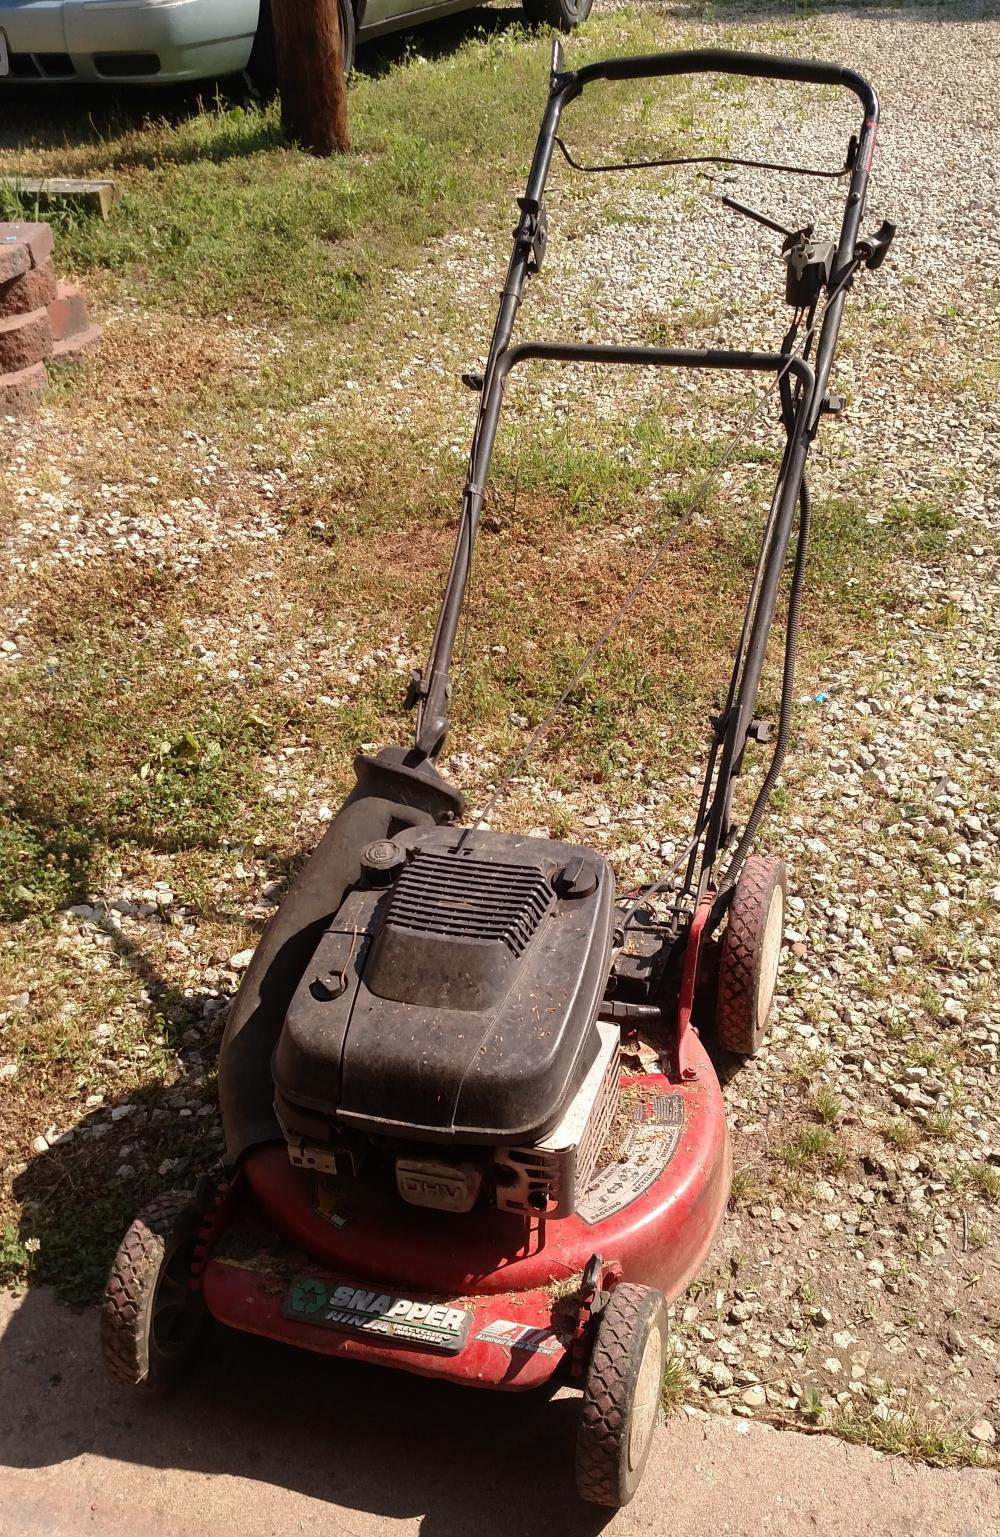 snapper ninja trim mower-- needs a little work